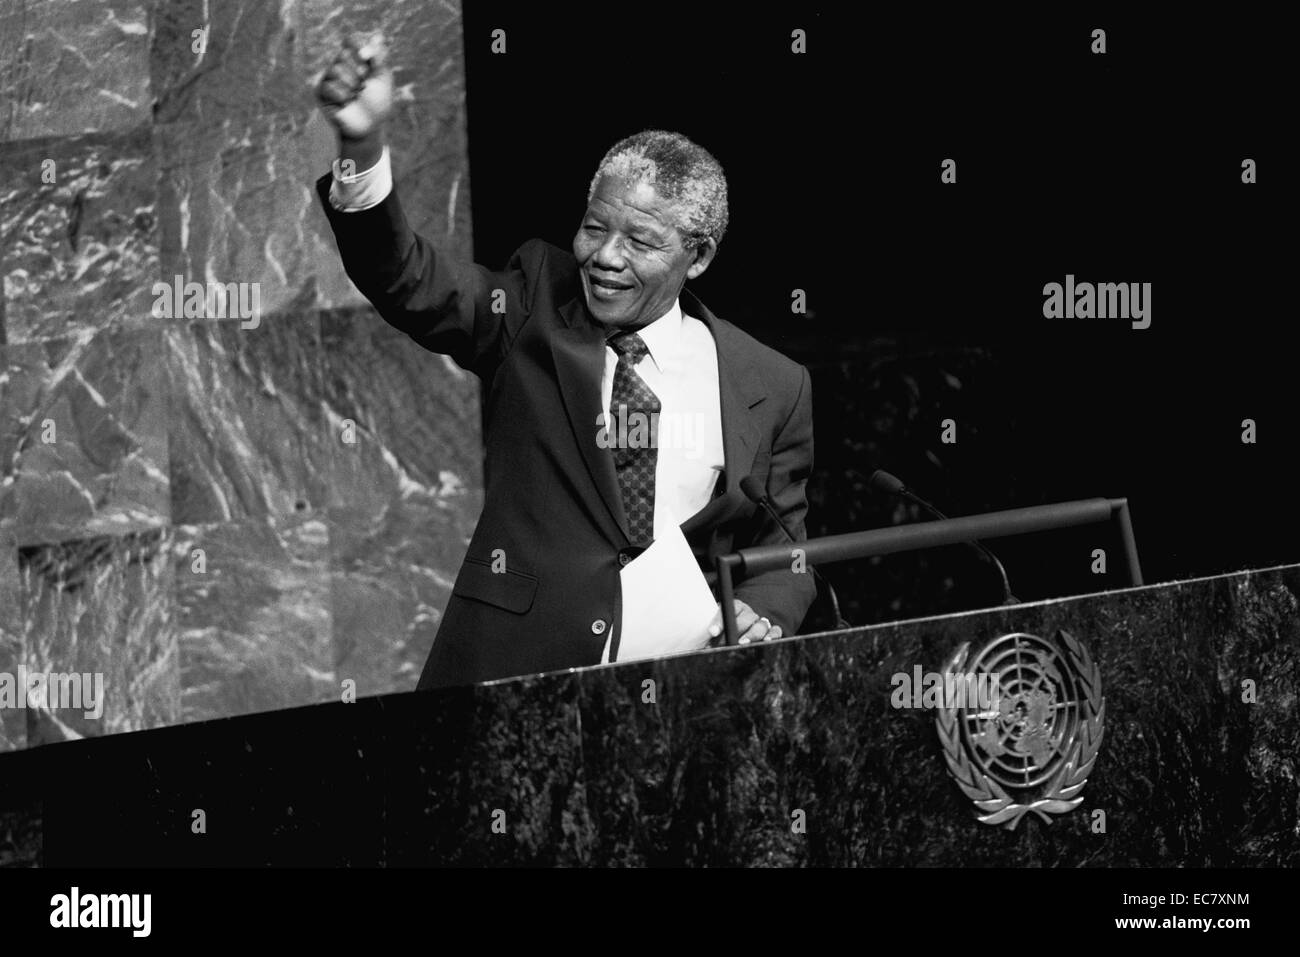 Nelson Mandela President of South Africa 1994-1998 addressing the UN General Assembly - Stock Image